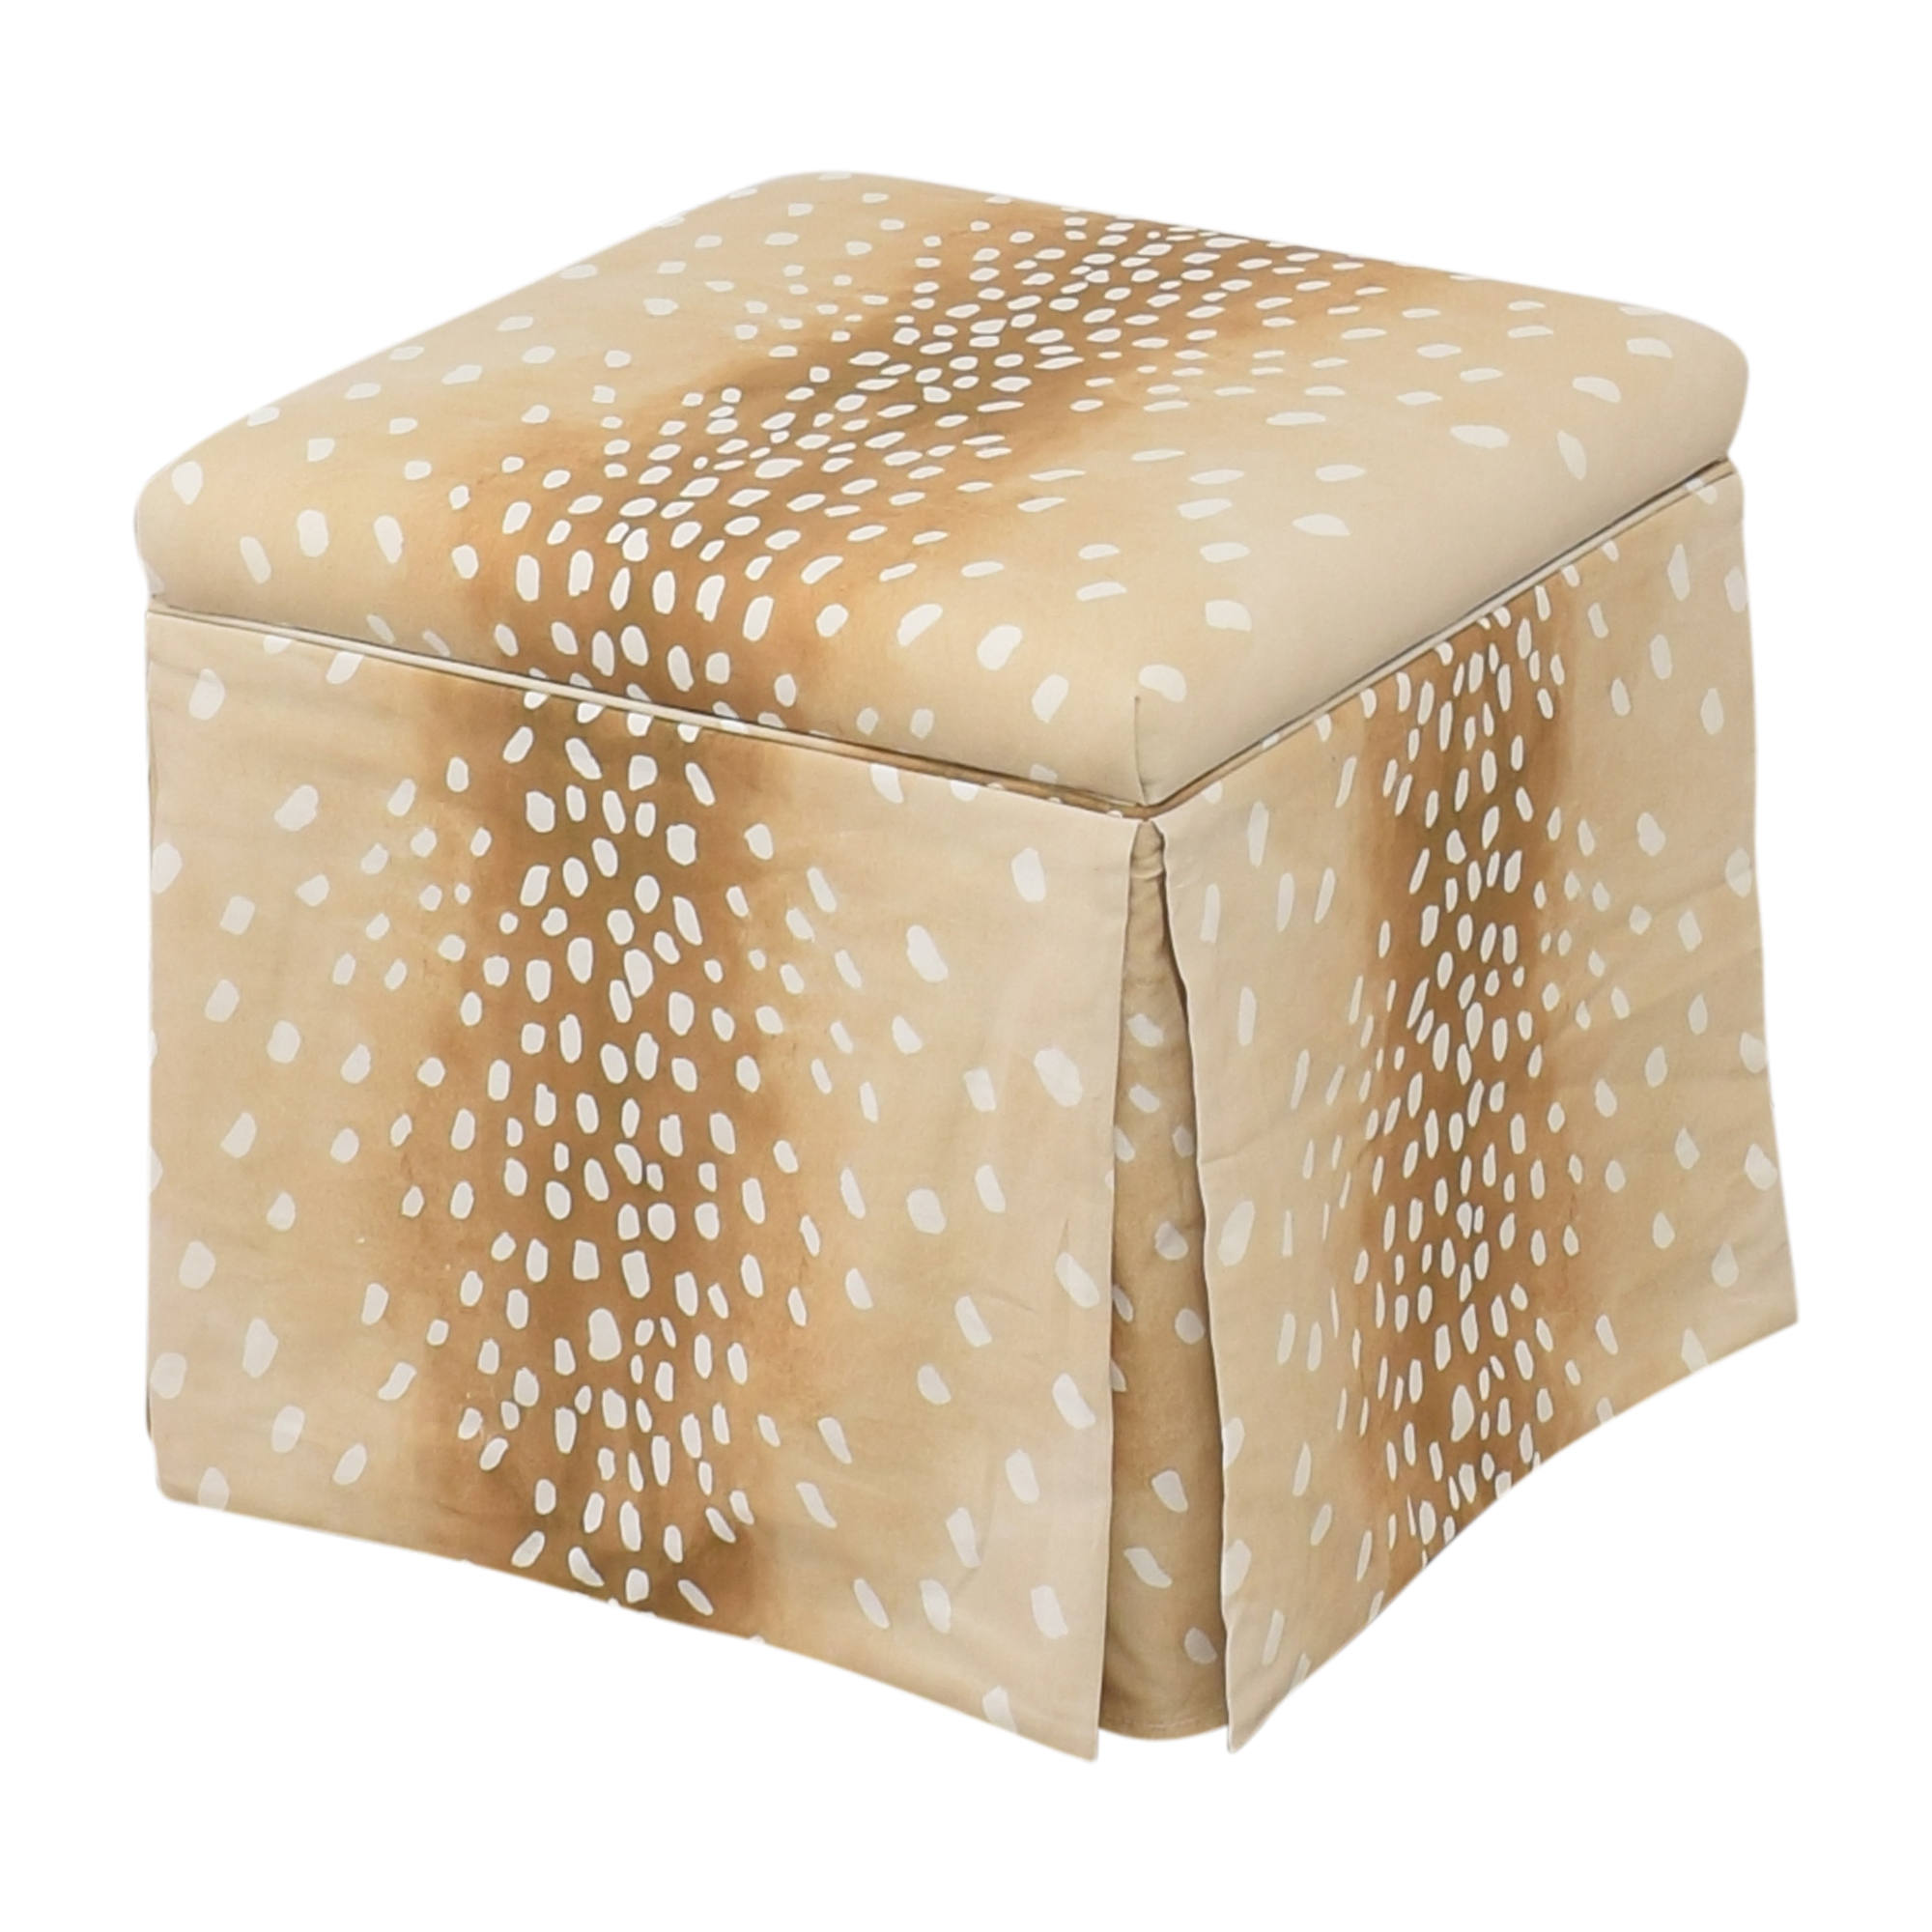 shop The Inside Fawn Skirted Storage Ottoman The Inside